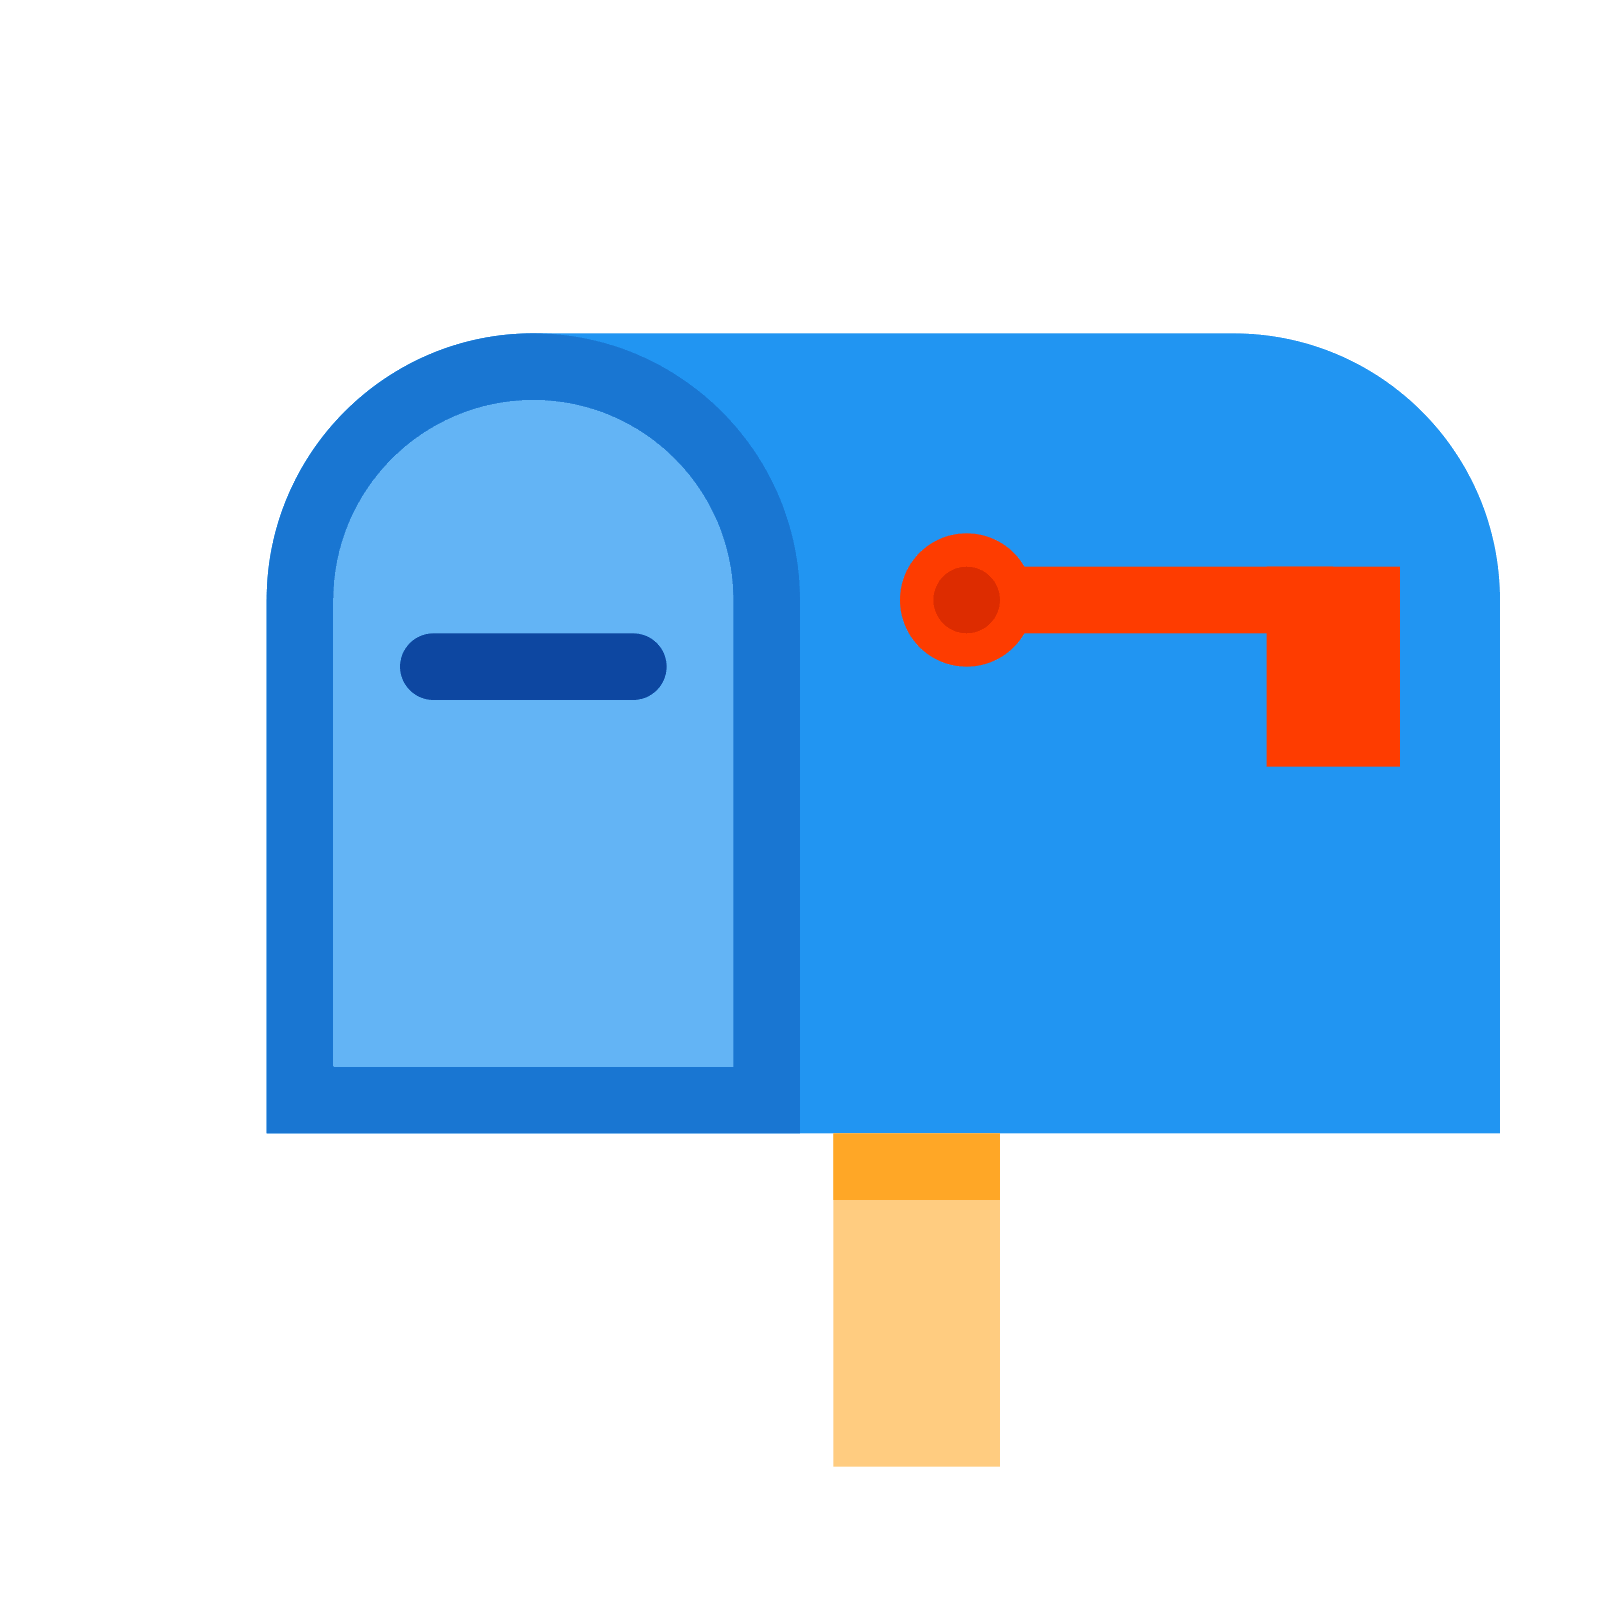 Png icon this is. Mailbox clipart flat